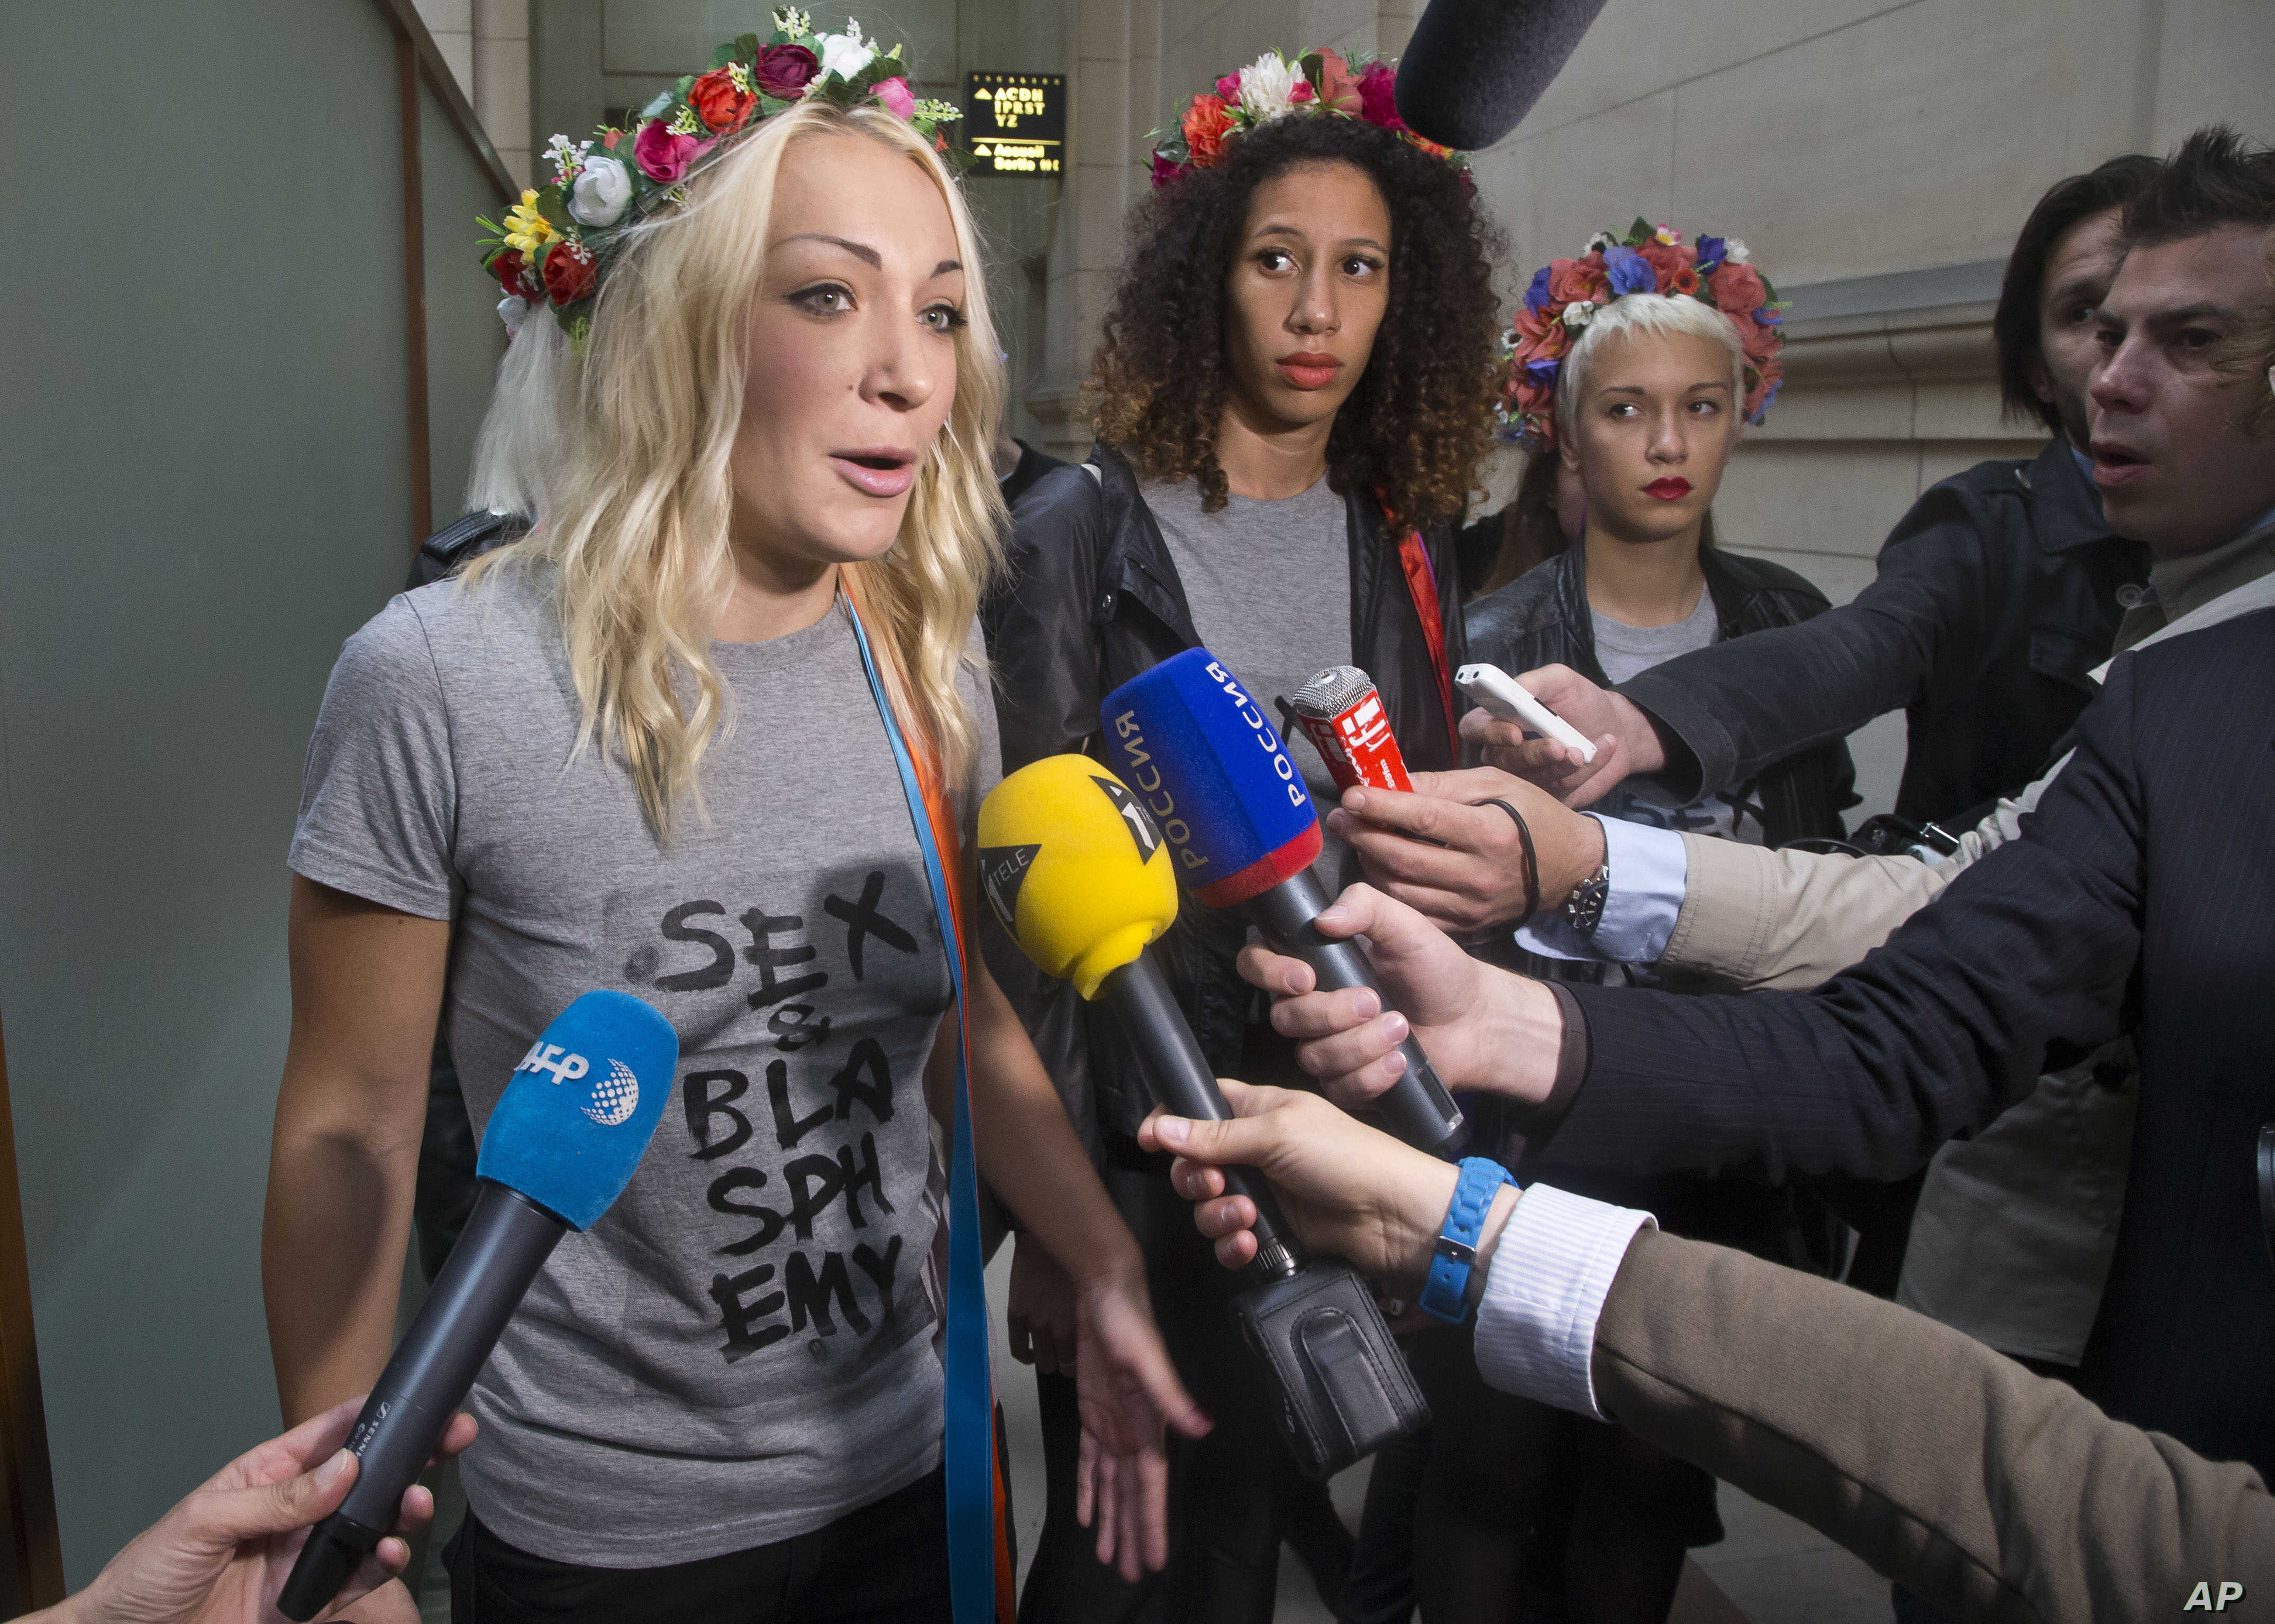 FILE - Leader of the feminist protest group Femen Ukrainian Inna Shevchenko, left, speaks to the media as she and other members of the group arrive at courhouse in Paris, July 9, 2014.